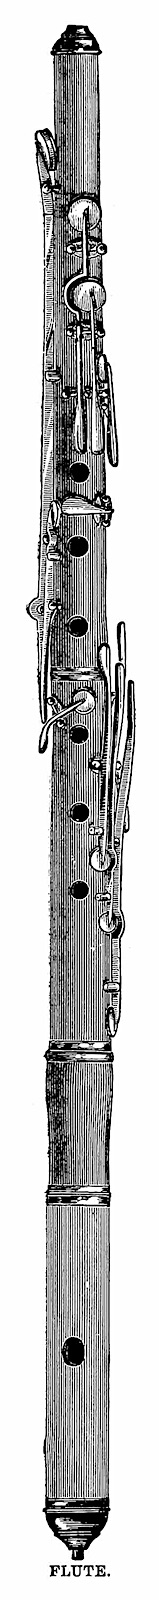 a detailed illustration of an 1886 flute